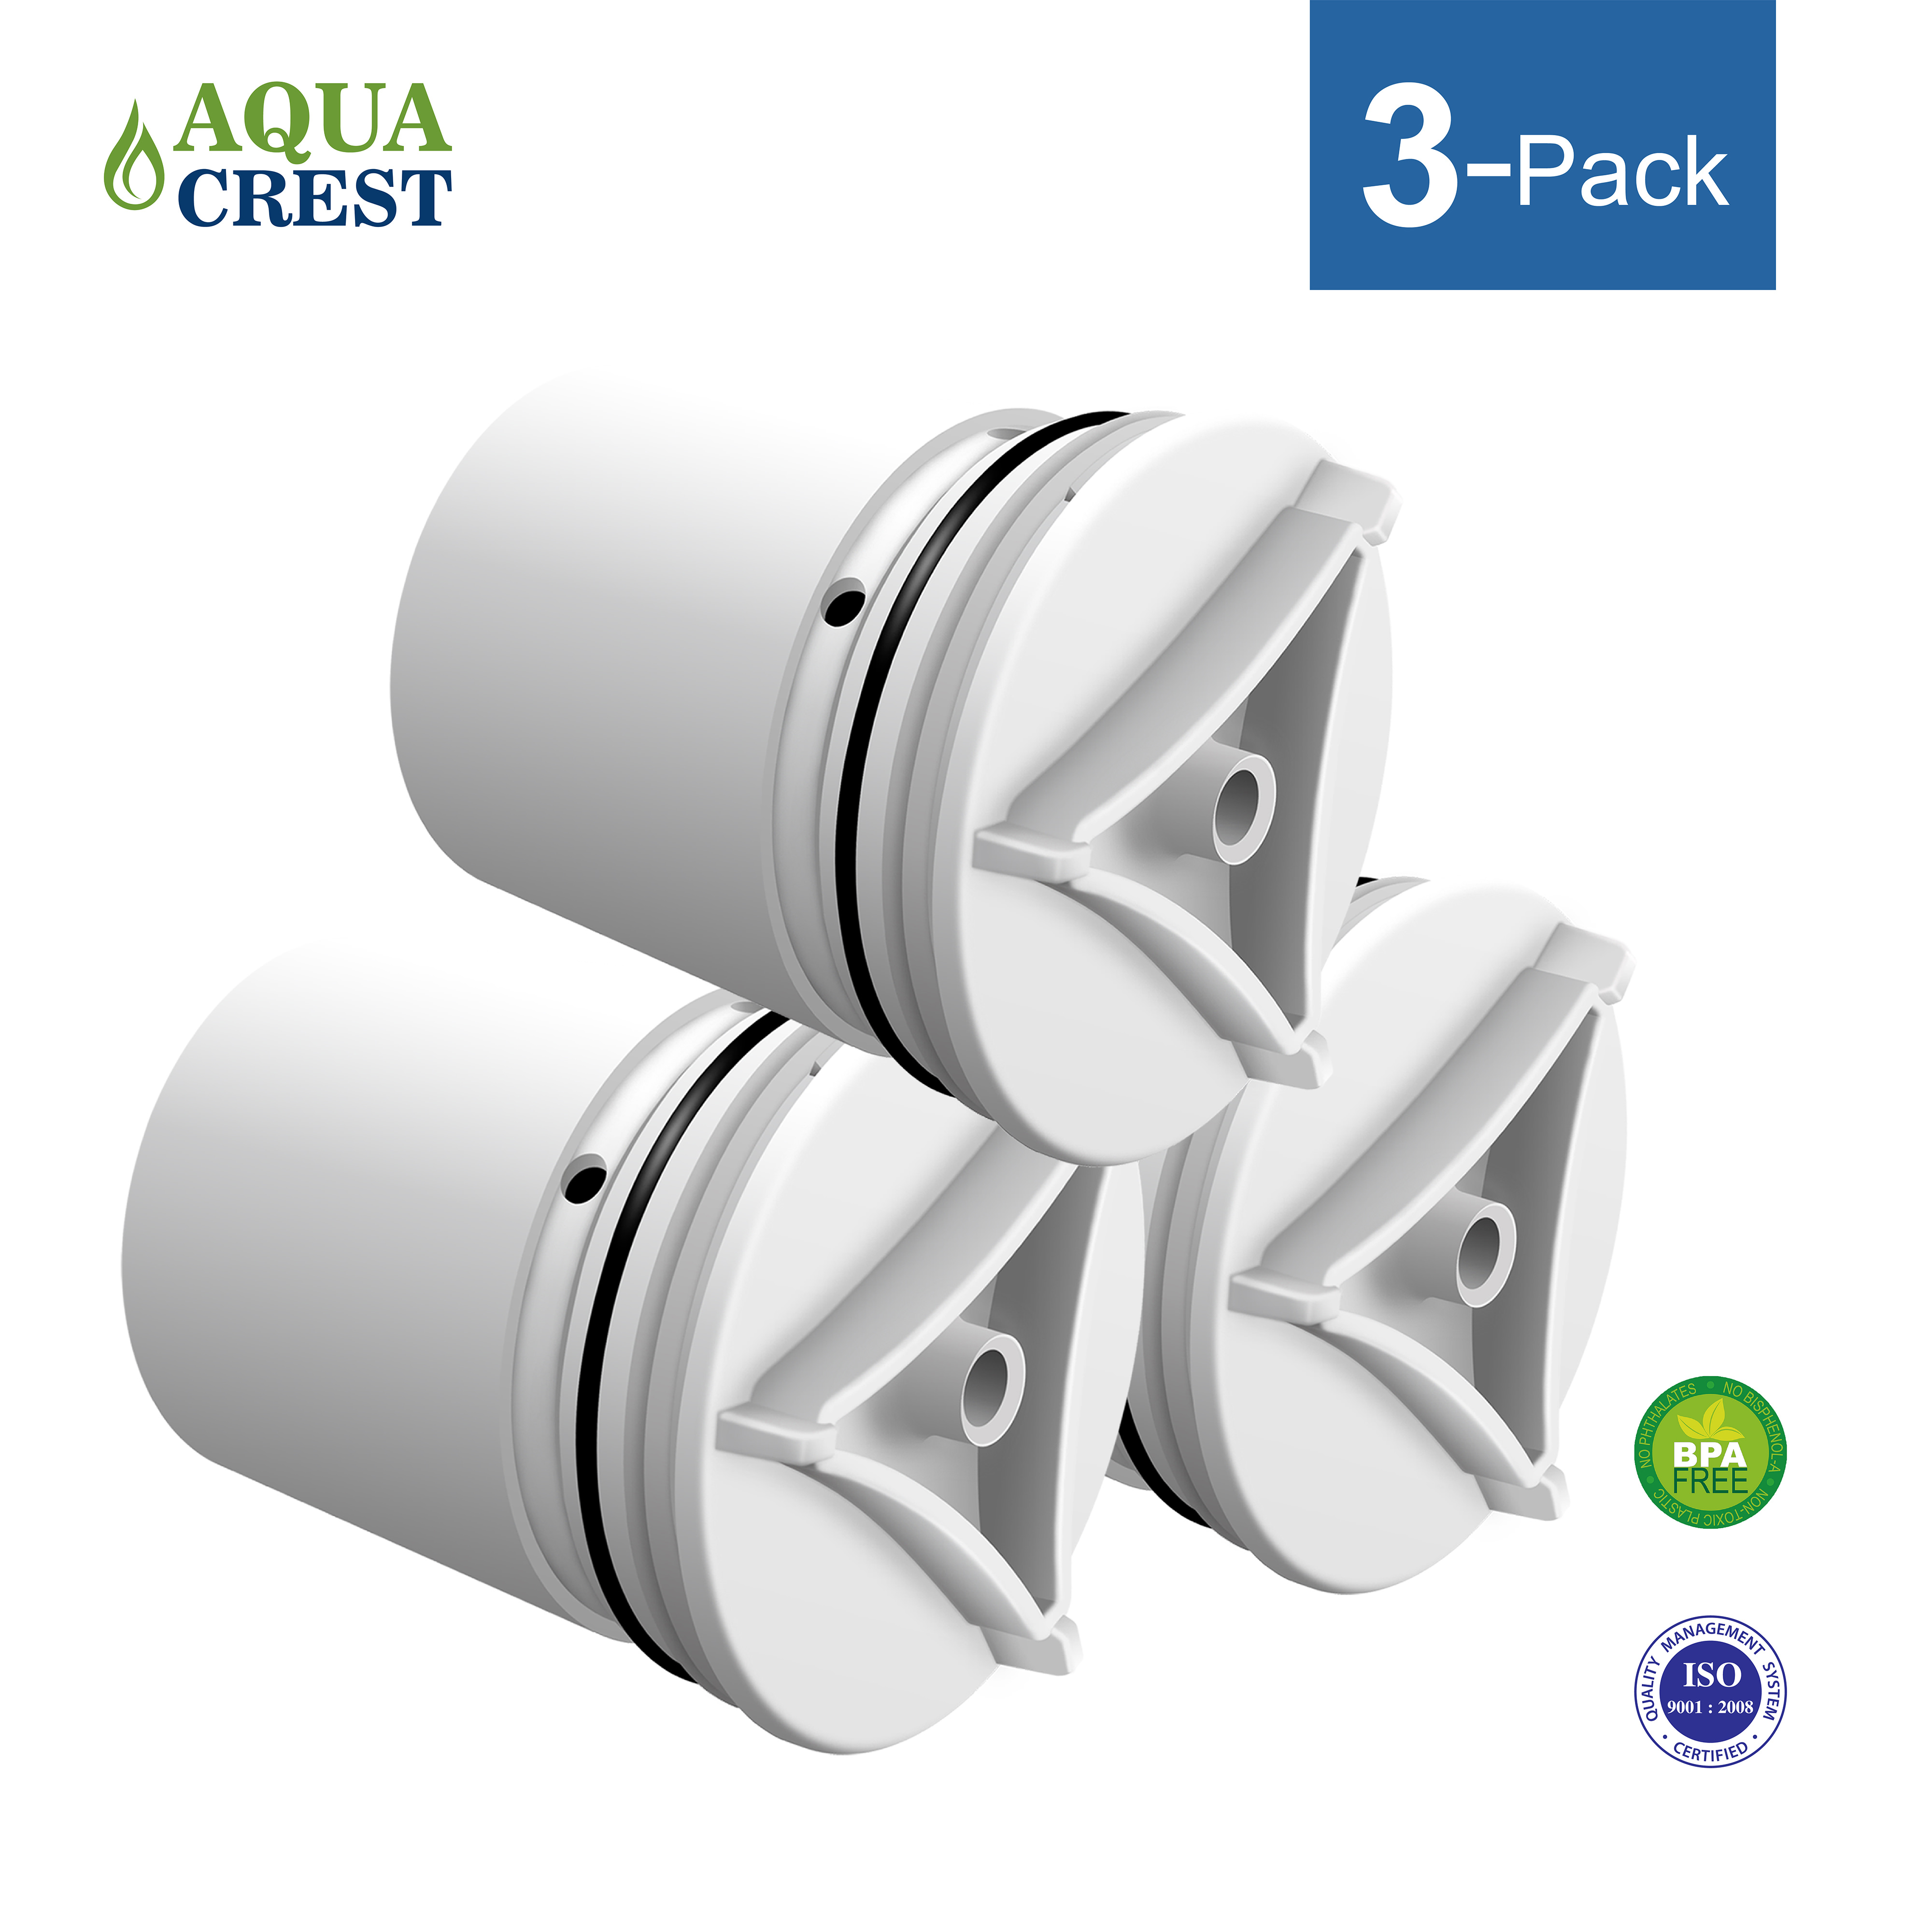 3 Pack AQUACREST FM-15RA Faucet Water Filter Replacement for Culligan FM-15RA